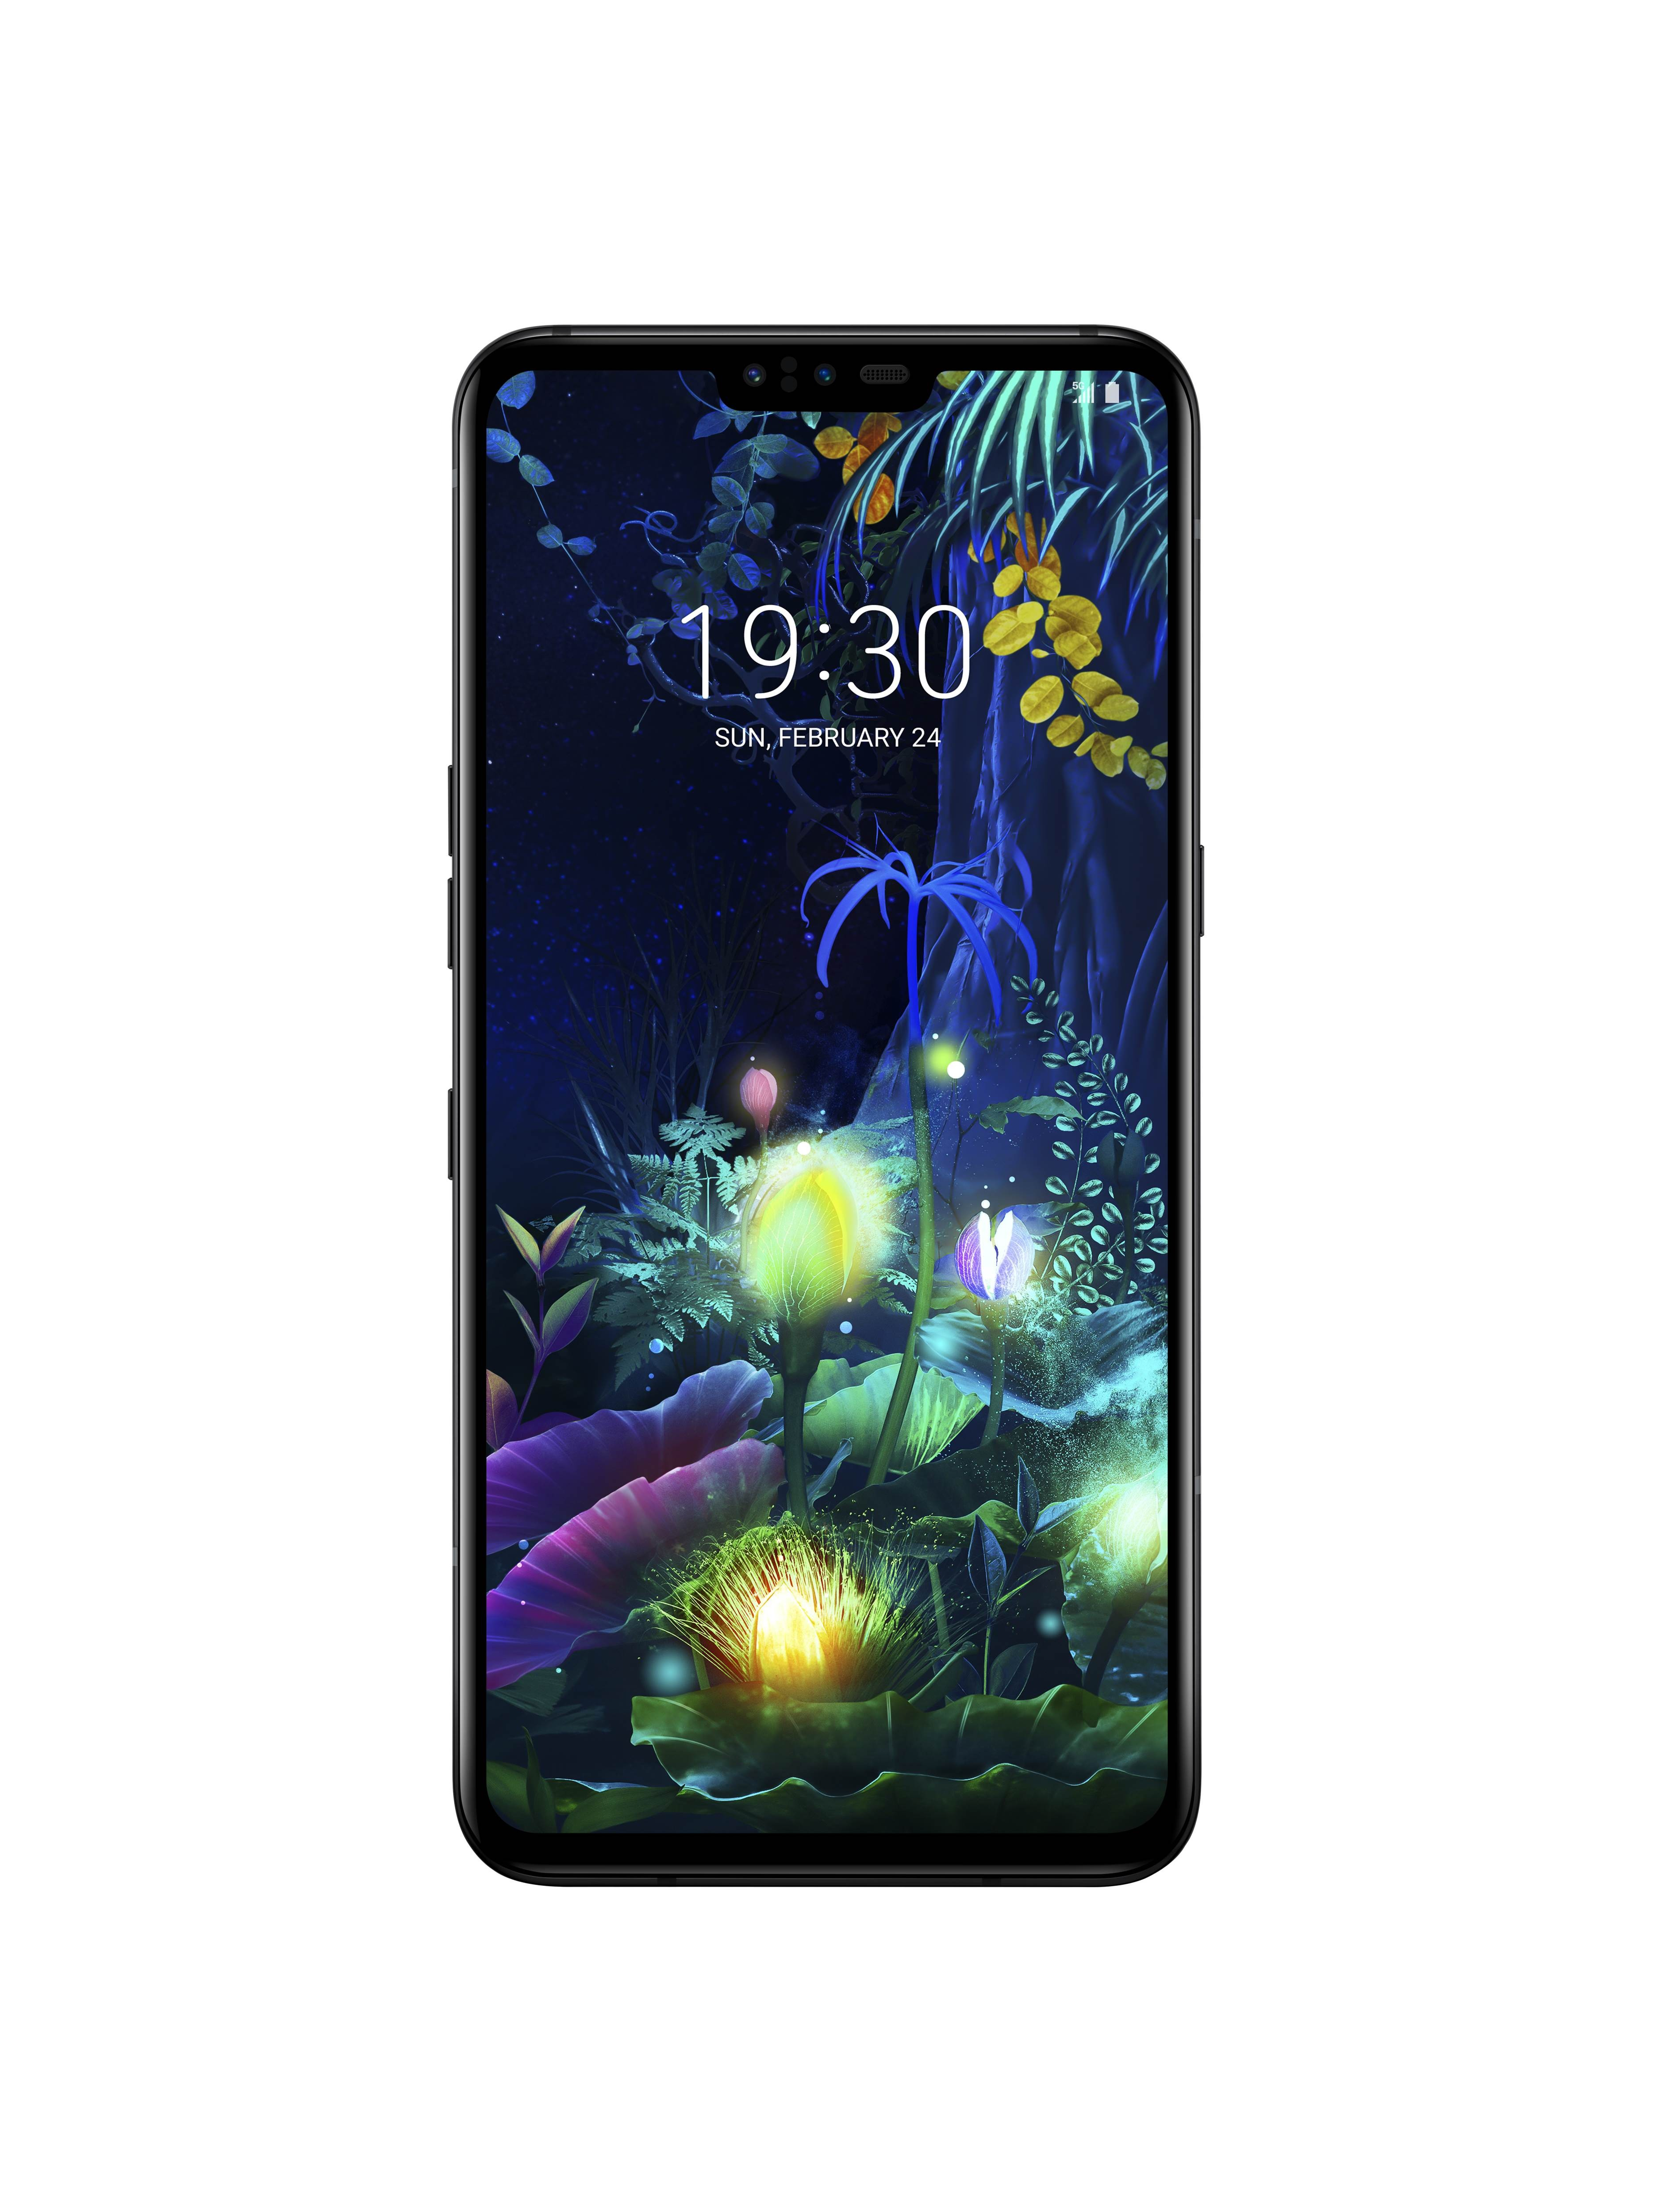 The front view of the LG V50 ThinQ 5G